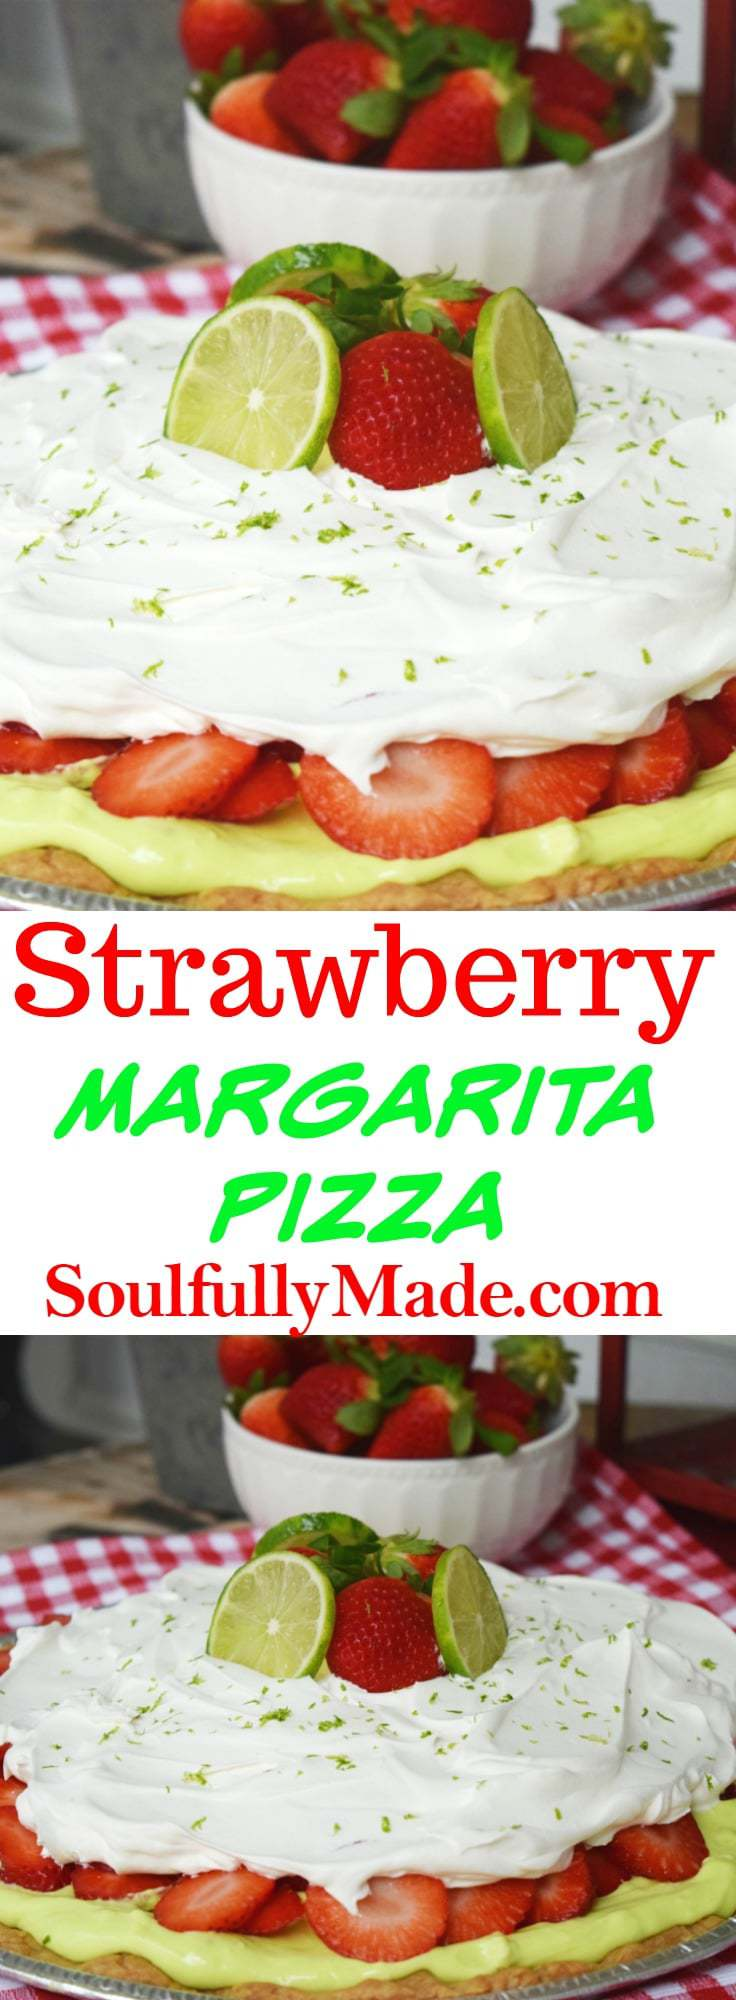 Strawberry Margarita Pizza Pinterest Image